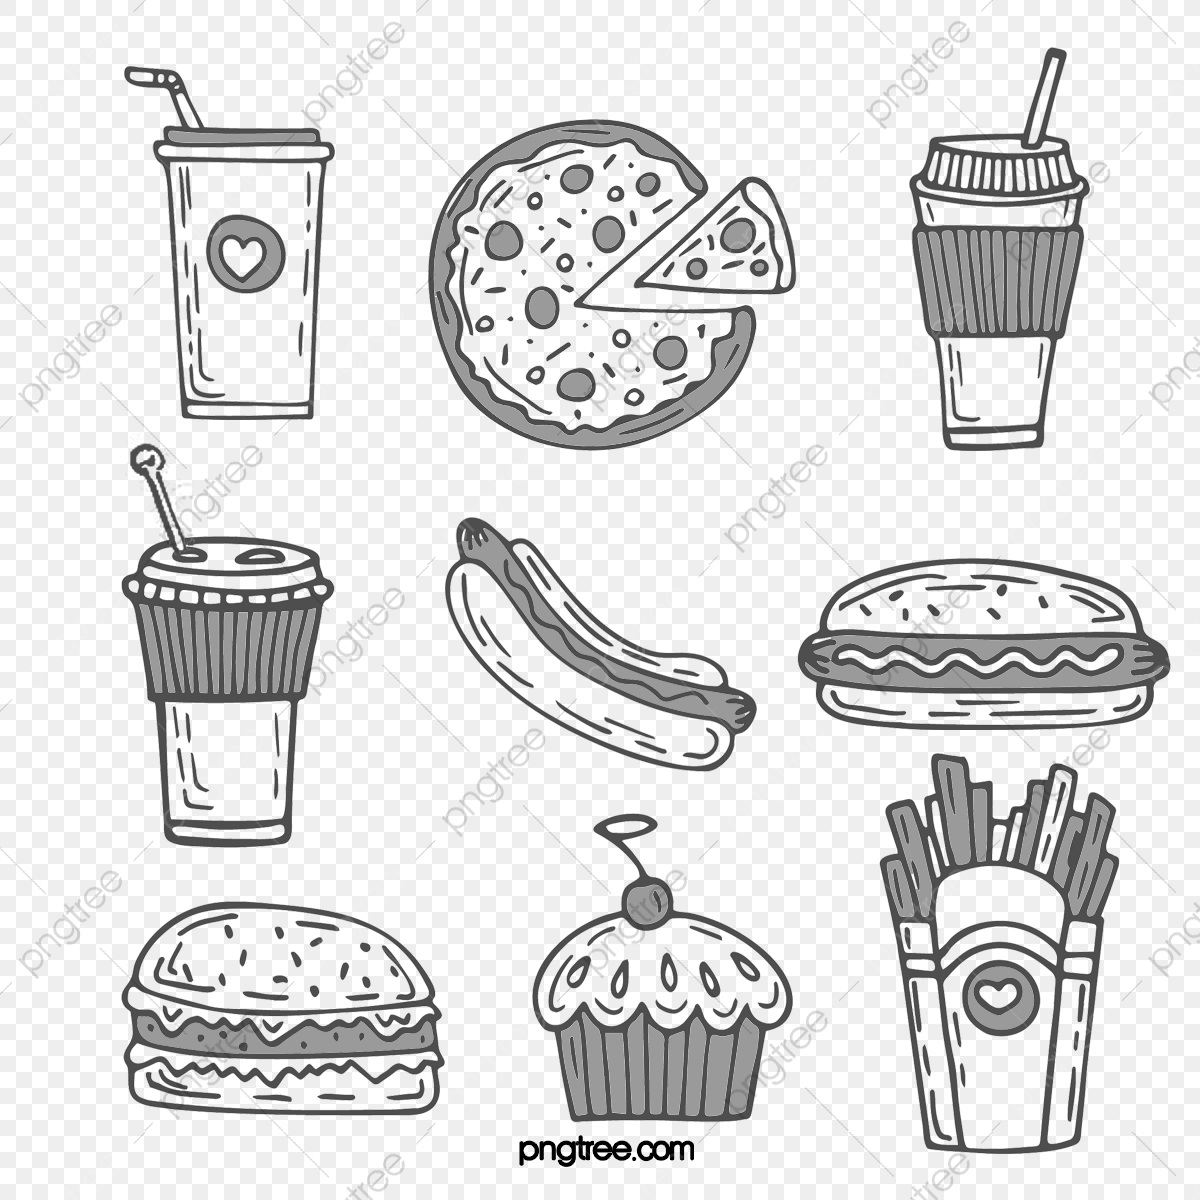 Western Fast Food Delicacies Black And White Line Sketch